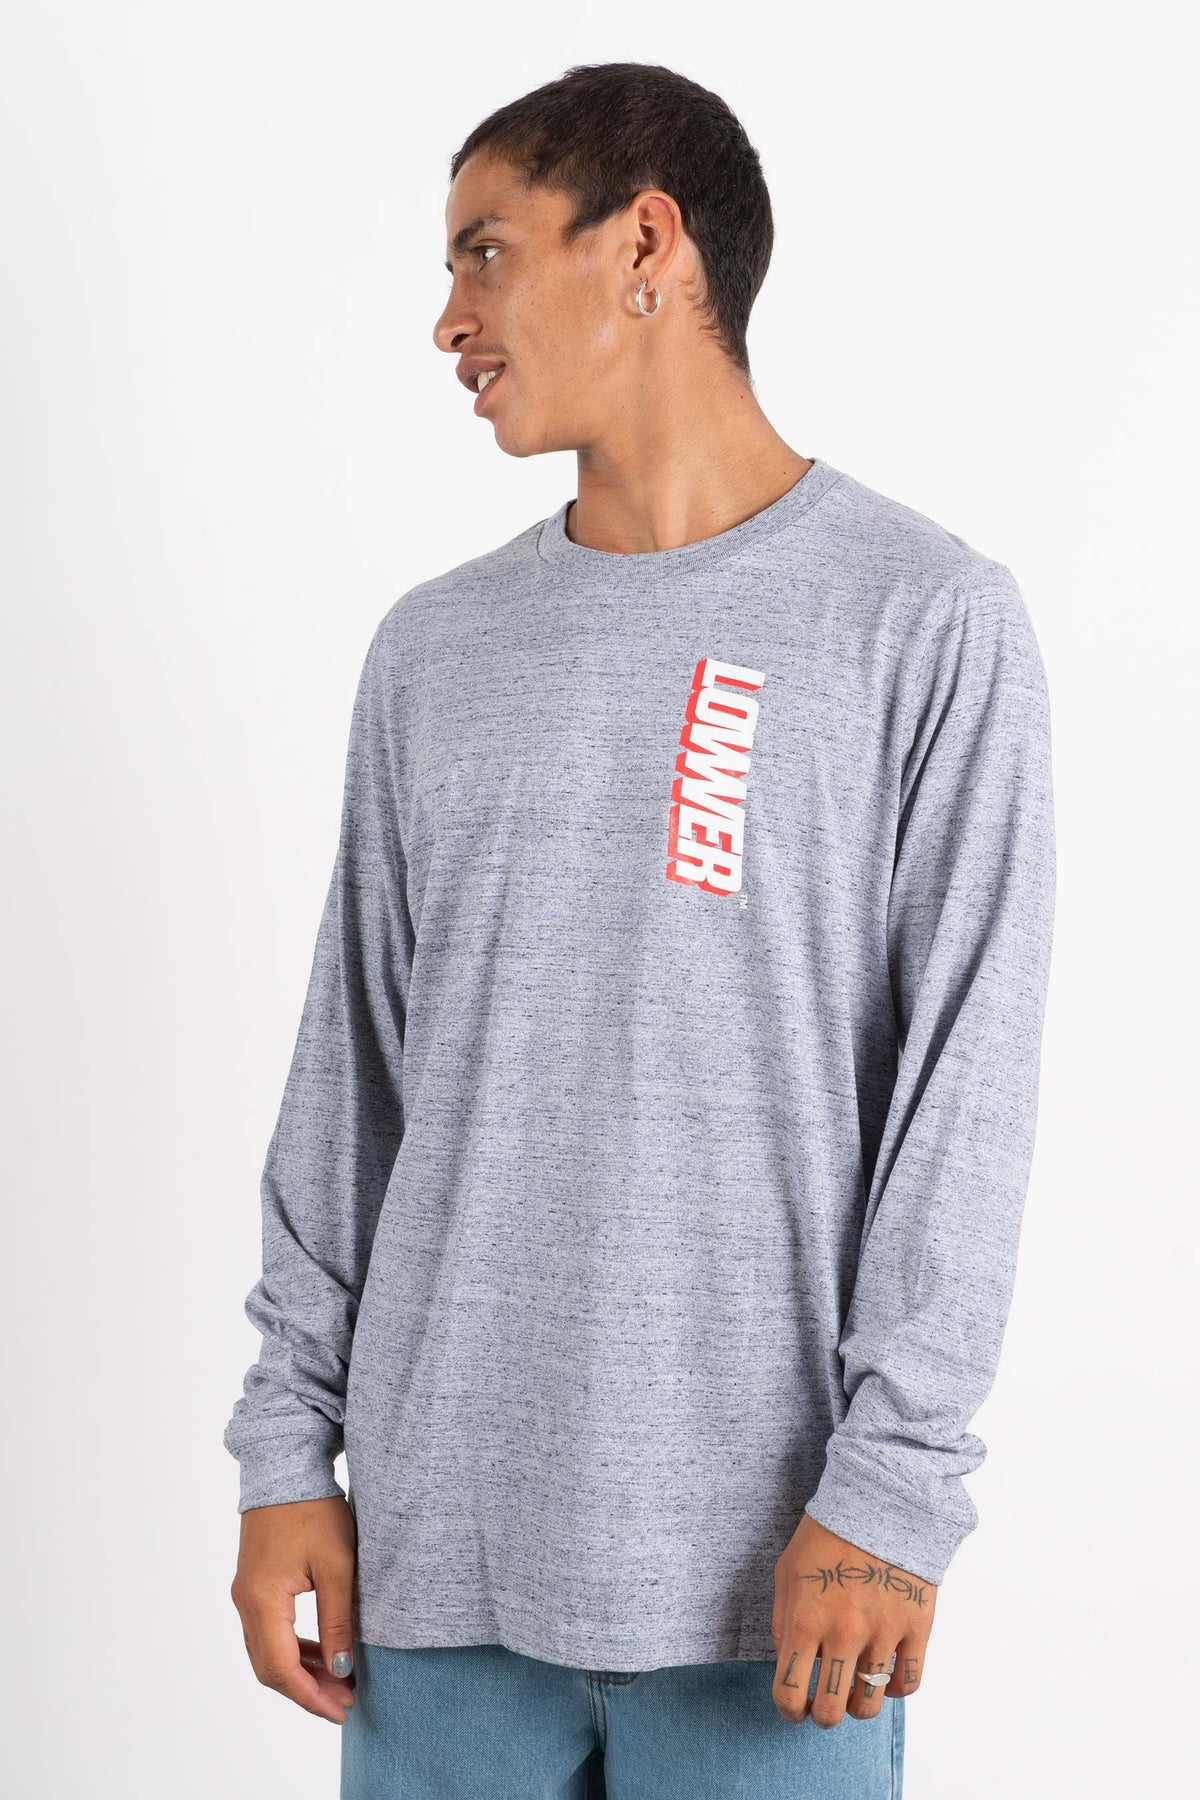 Mens QRS L/S Tee - Giants 2.0 - Grey